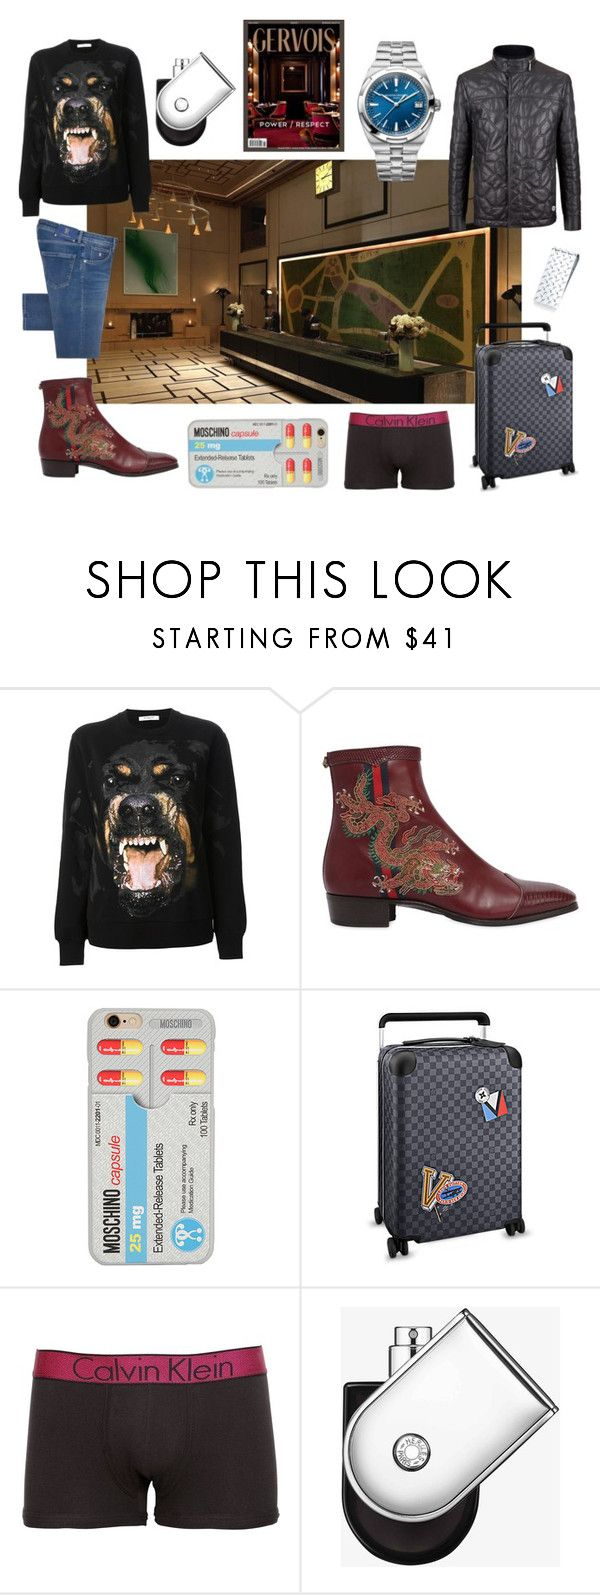 """""""The London NYC"""" by gervoisrating ❤ liked on Polyvore featuring Givenchy, Gucci, Moschino, Stefano Ricci, Calvin Klein Underwear, Hermès, contemporary, men's fashion and menswear"""